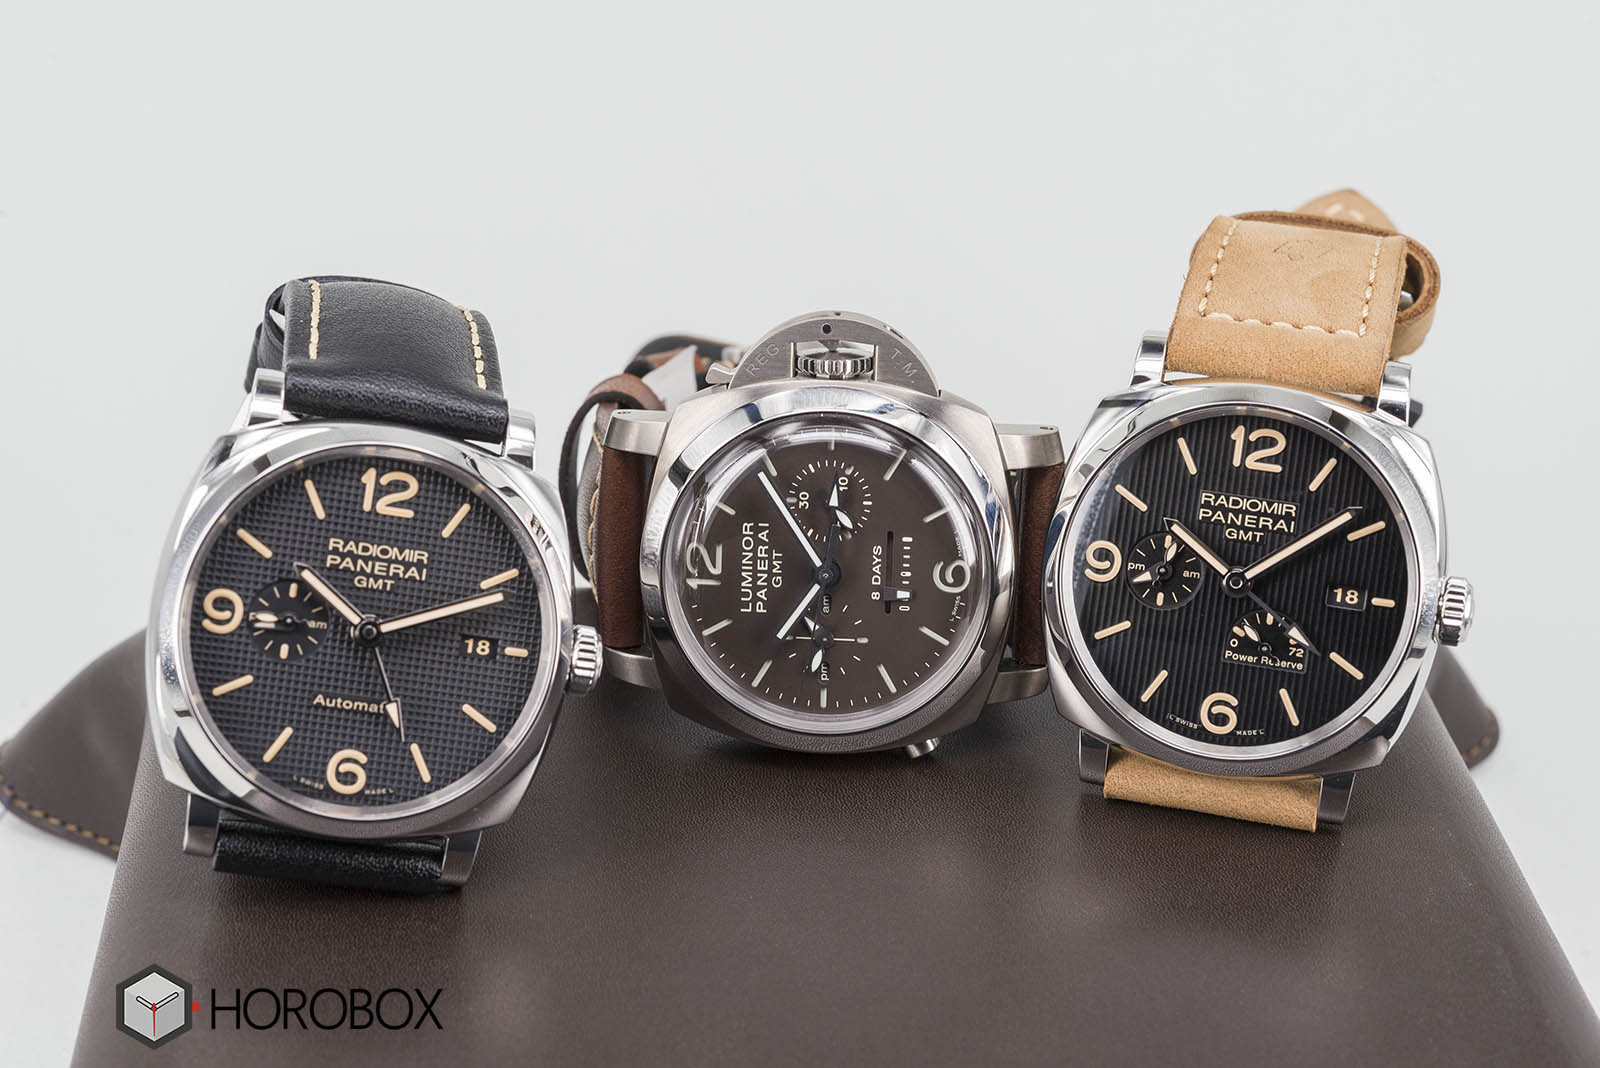 Officine-panerai-power-reserve-2.jpg